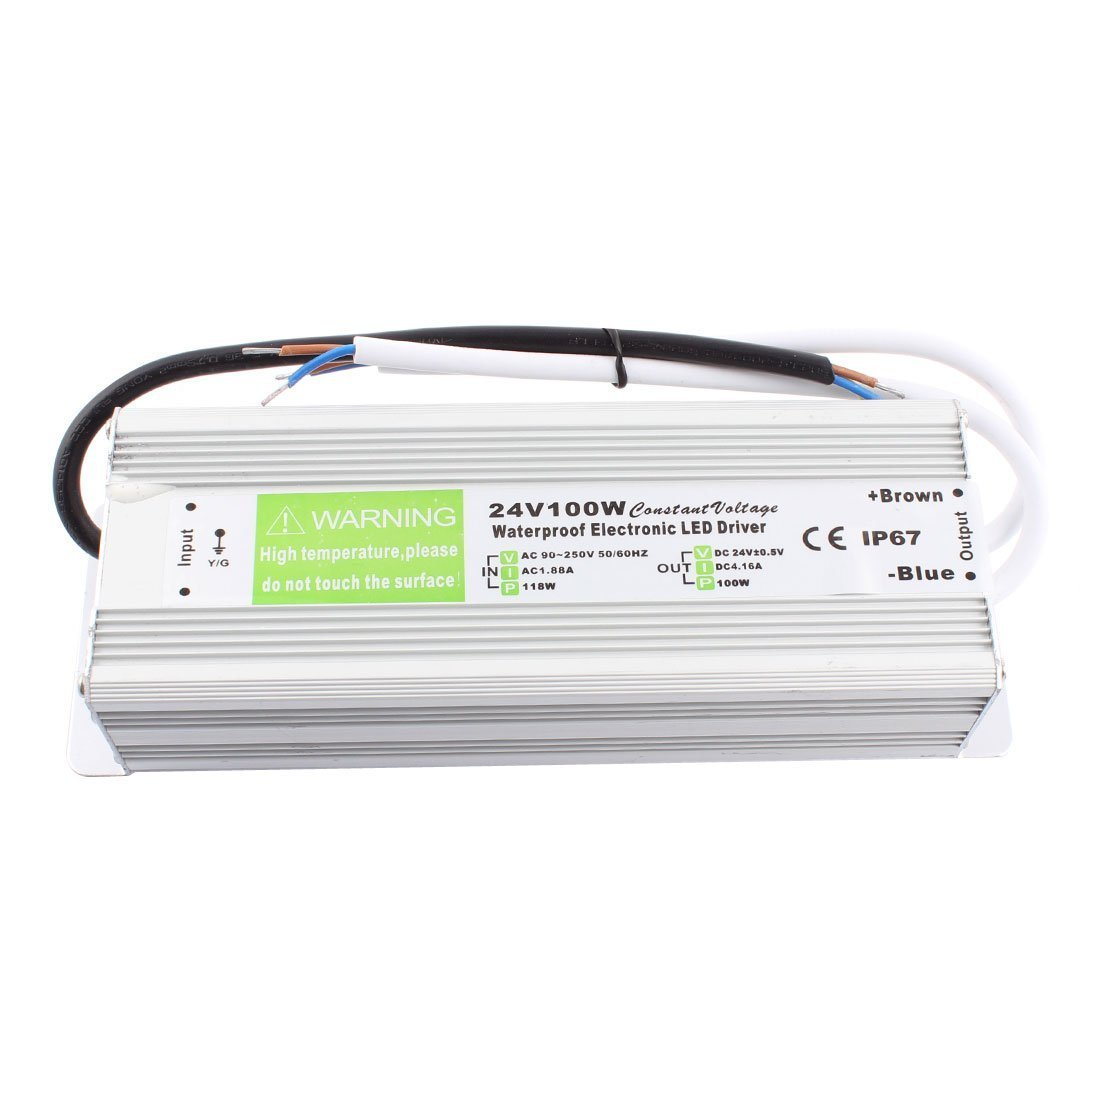 joypjlit Dc24v 100w LED Transformer Power Supply Led Driver Waterproof for Outdoor Use Ip67